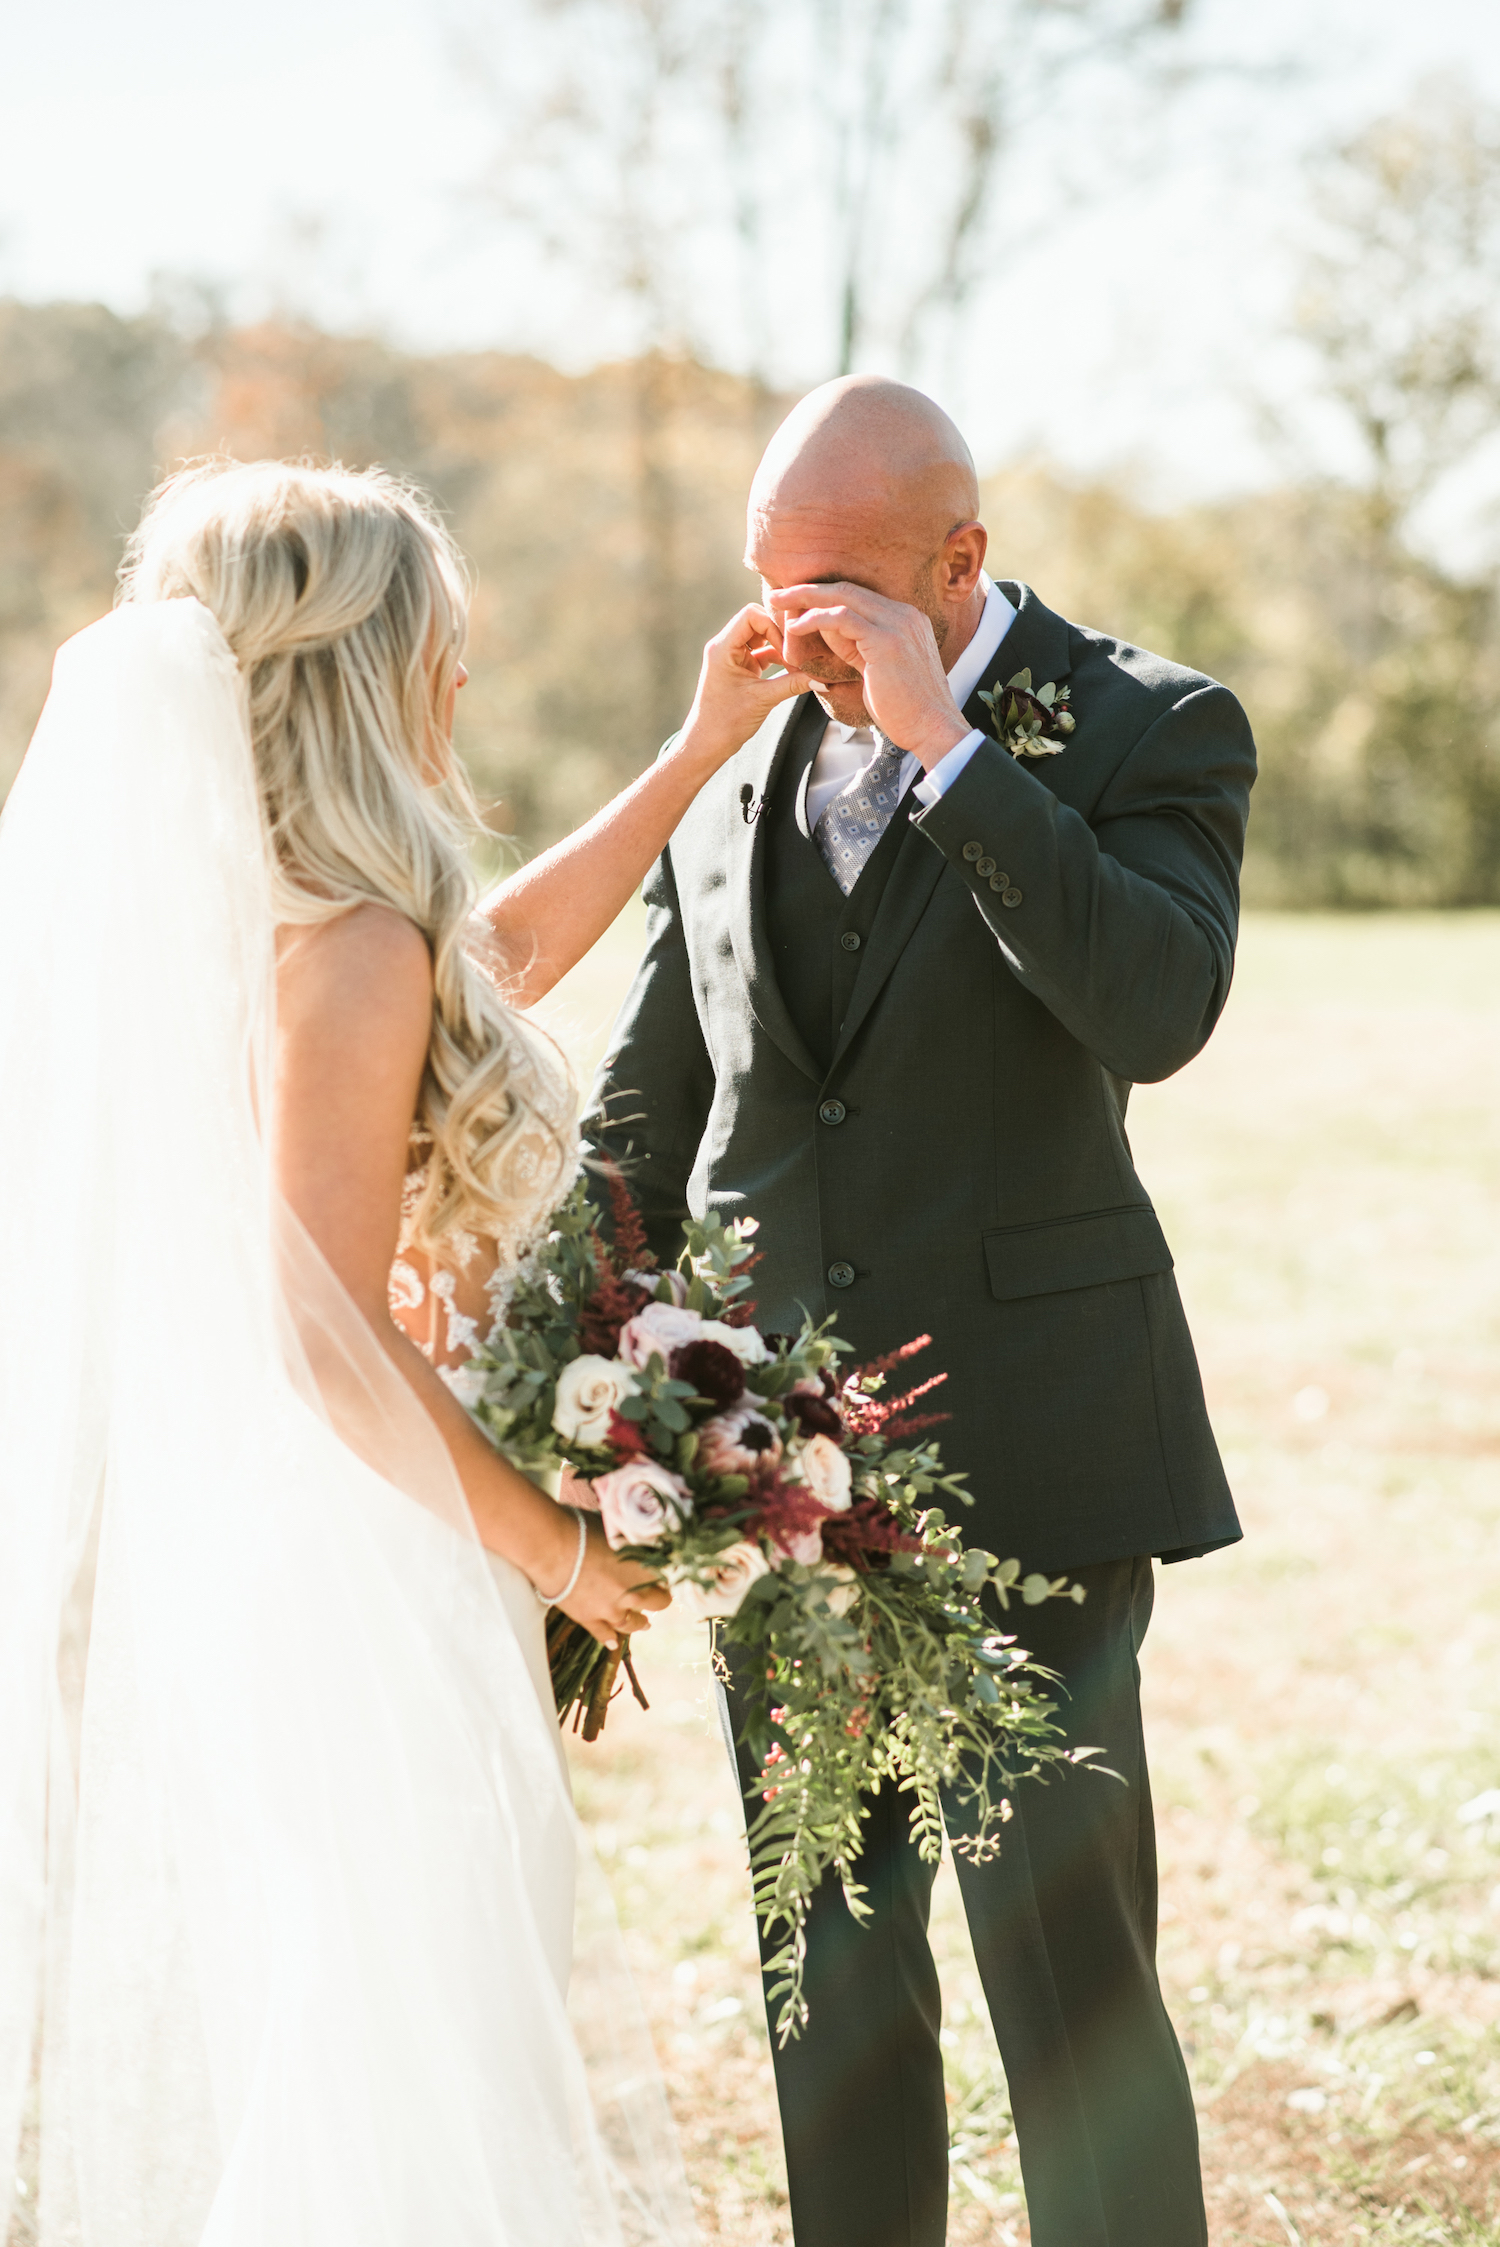 Wedding First Look captured by Shelby Rae Photographs on Nashville Bride Guide